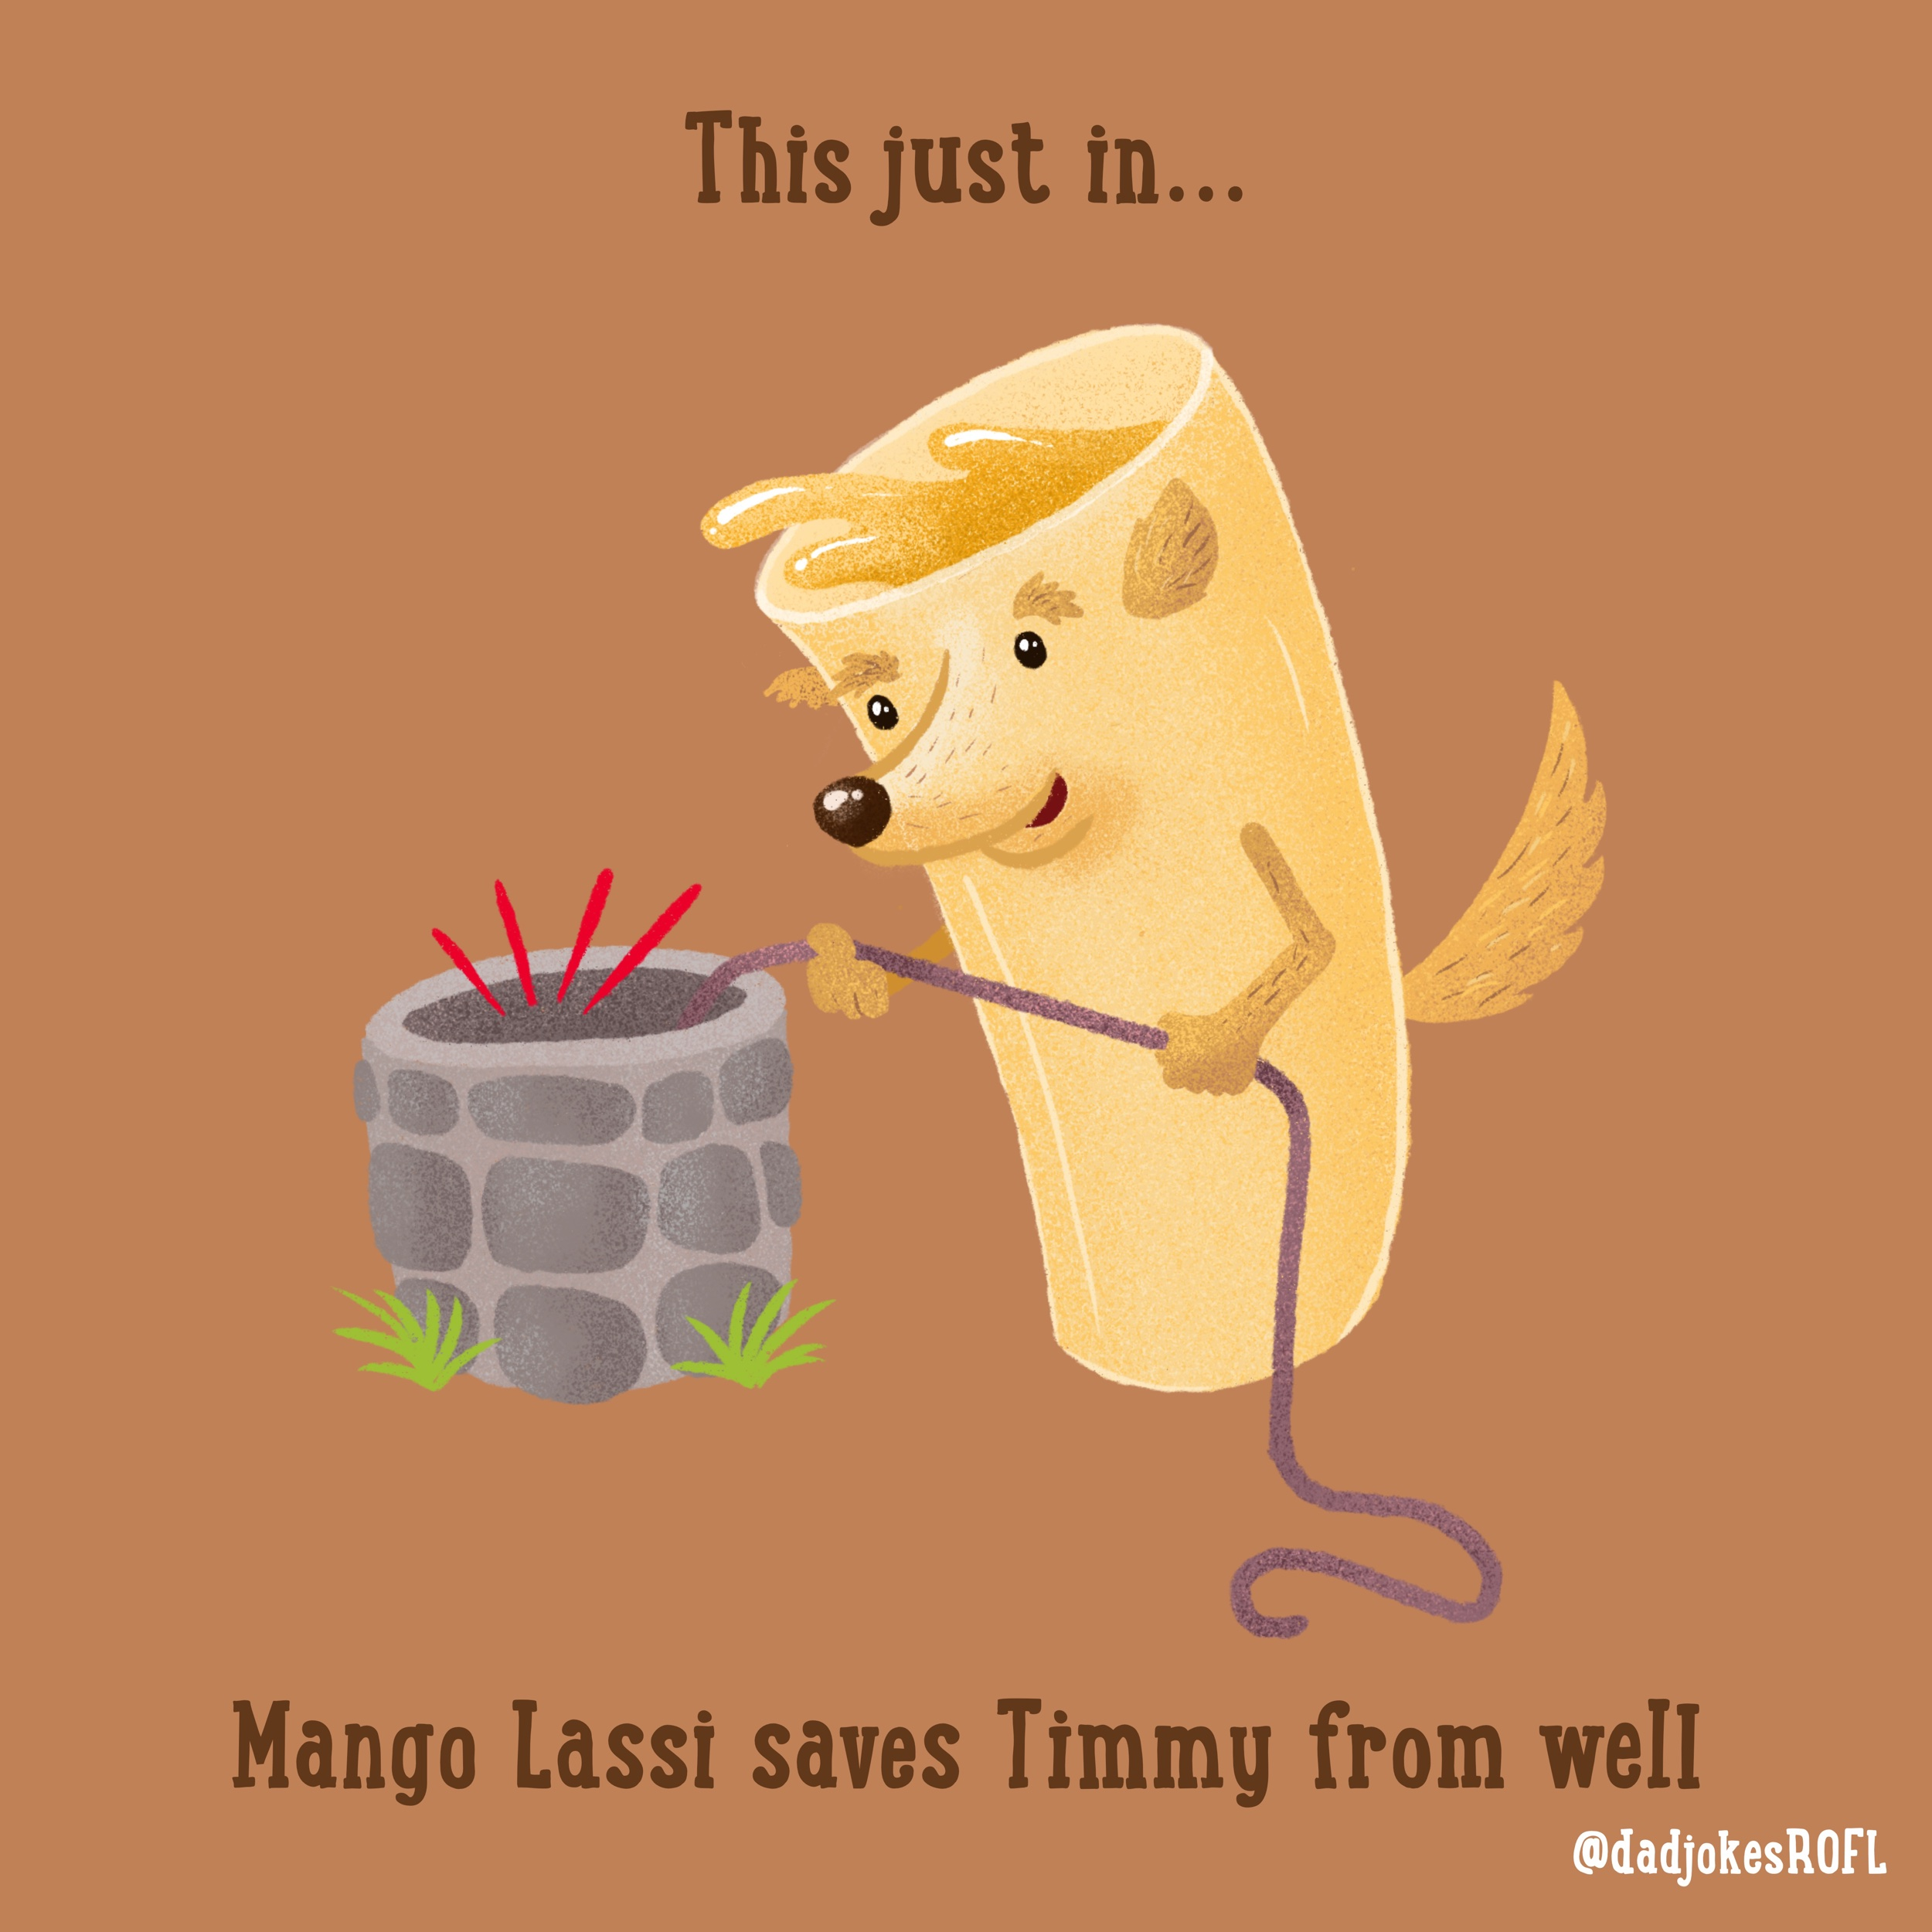 ‪This just in...‬ ‪Mango Lassi saves Timmy from well‬